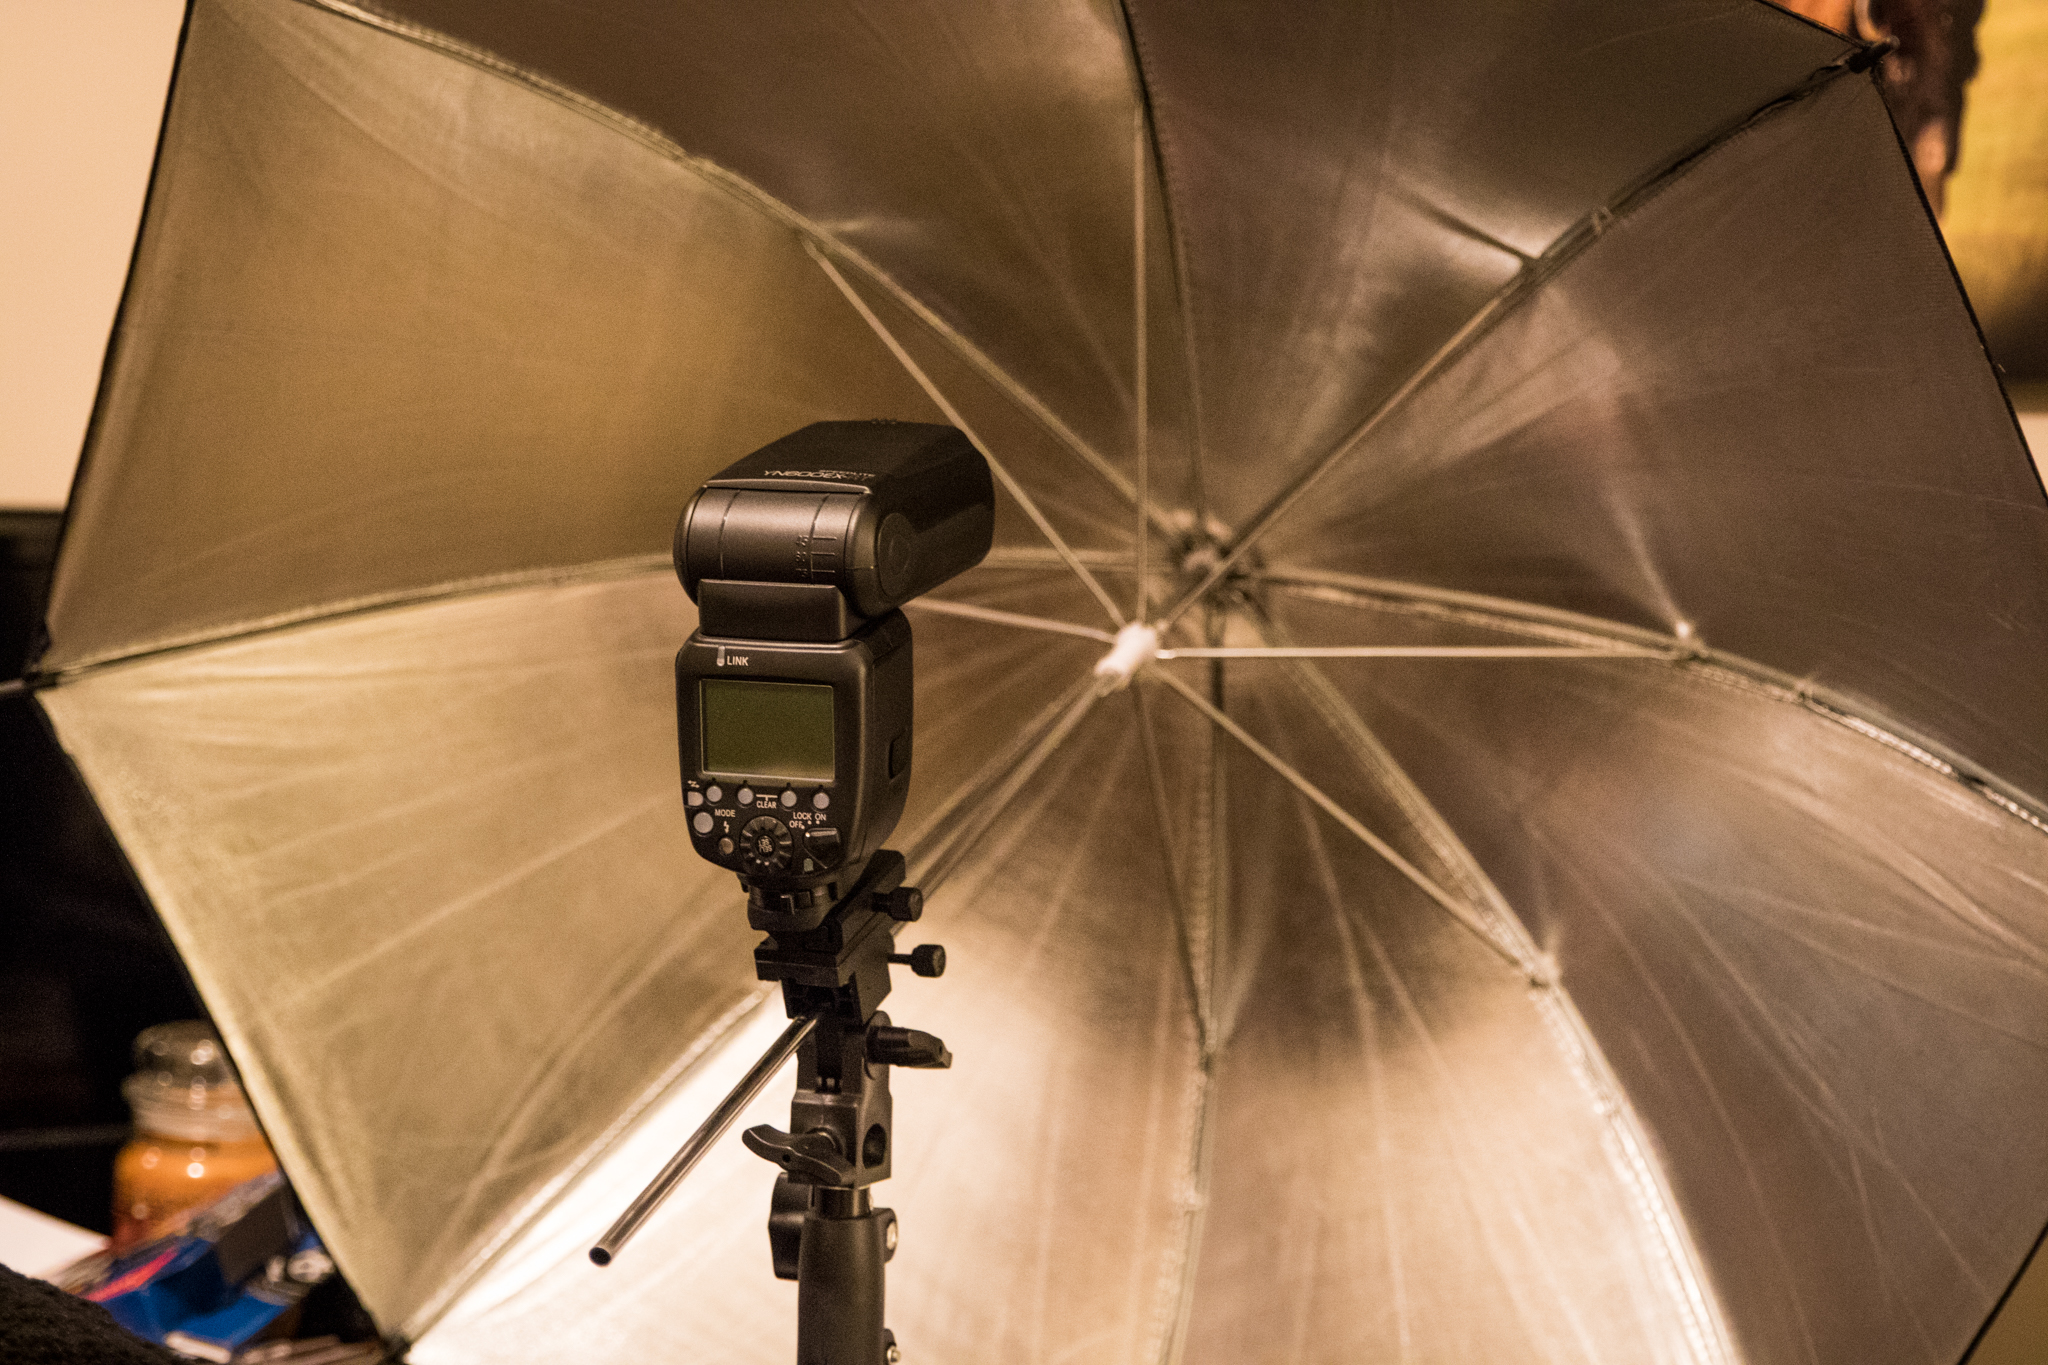 $100 speed light bouncing into an umbrella